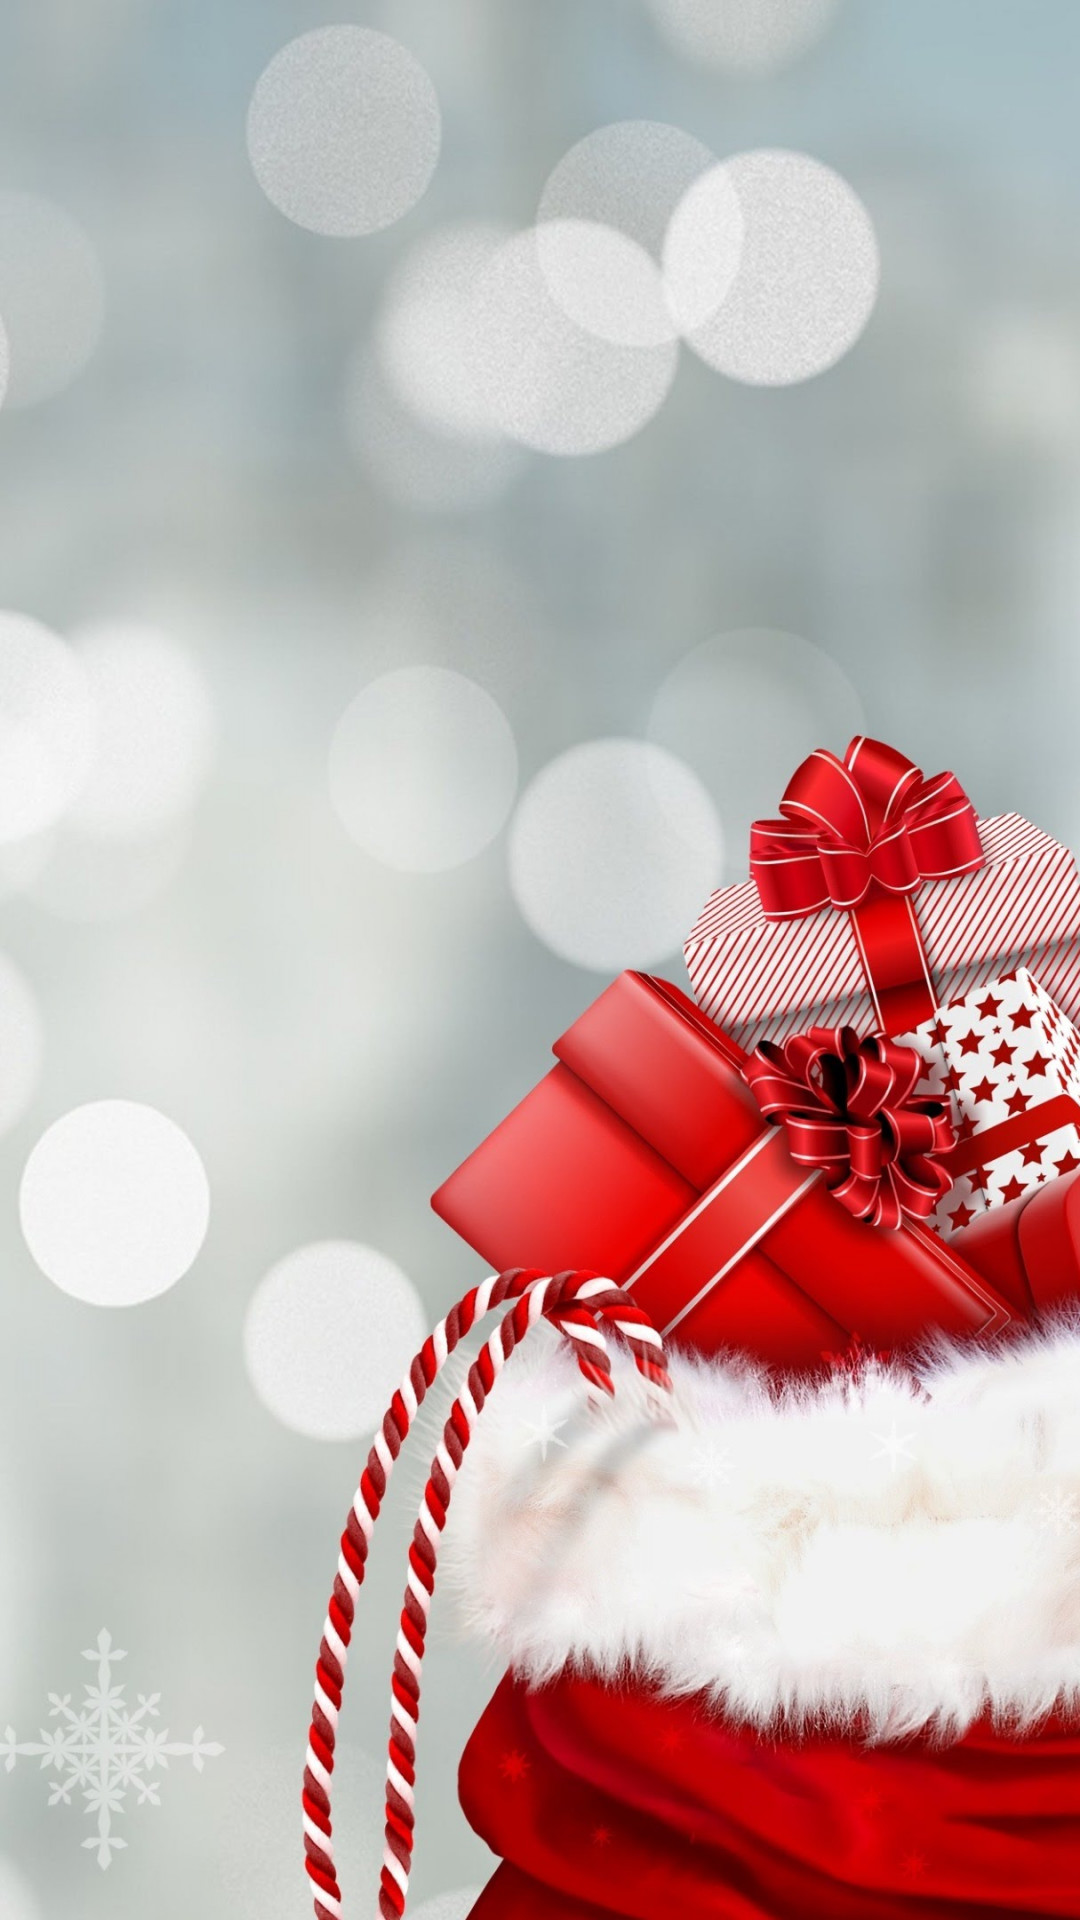 Bag with Christmas gifts wallpaper 1080x1920